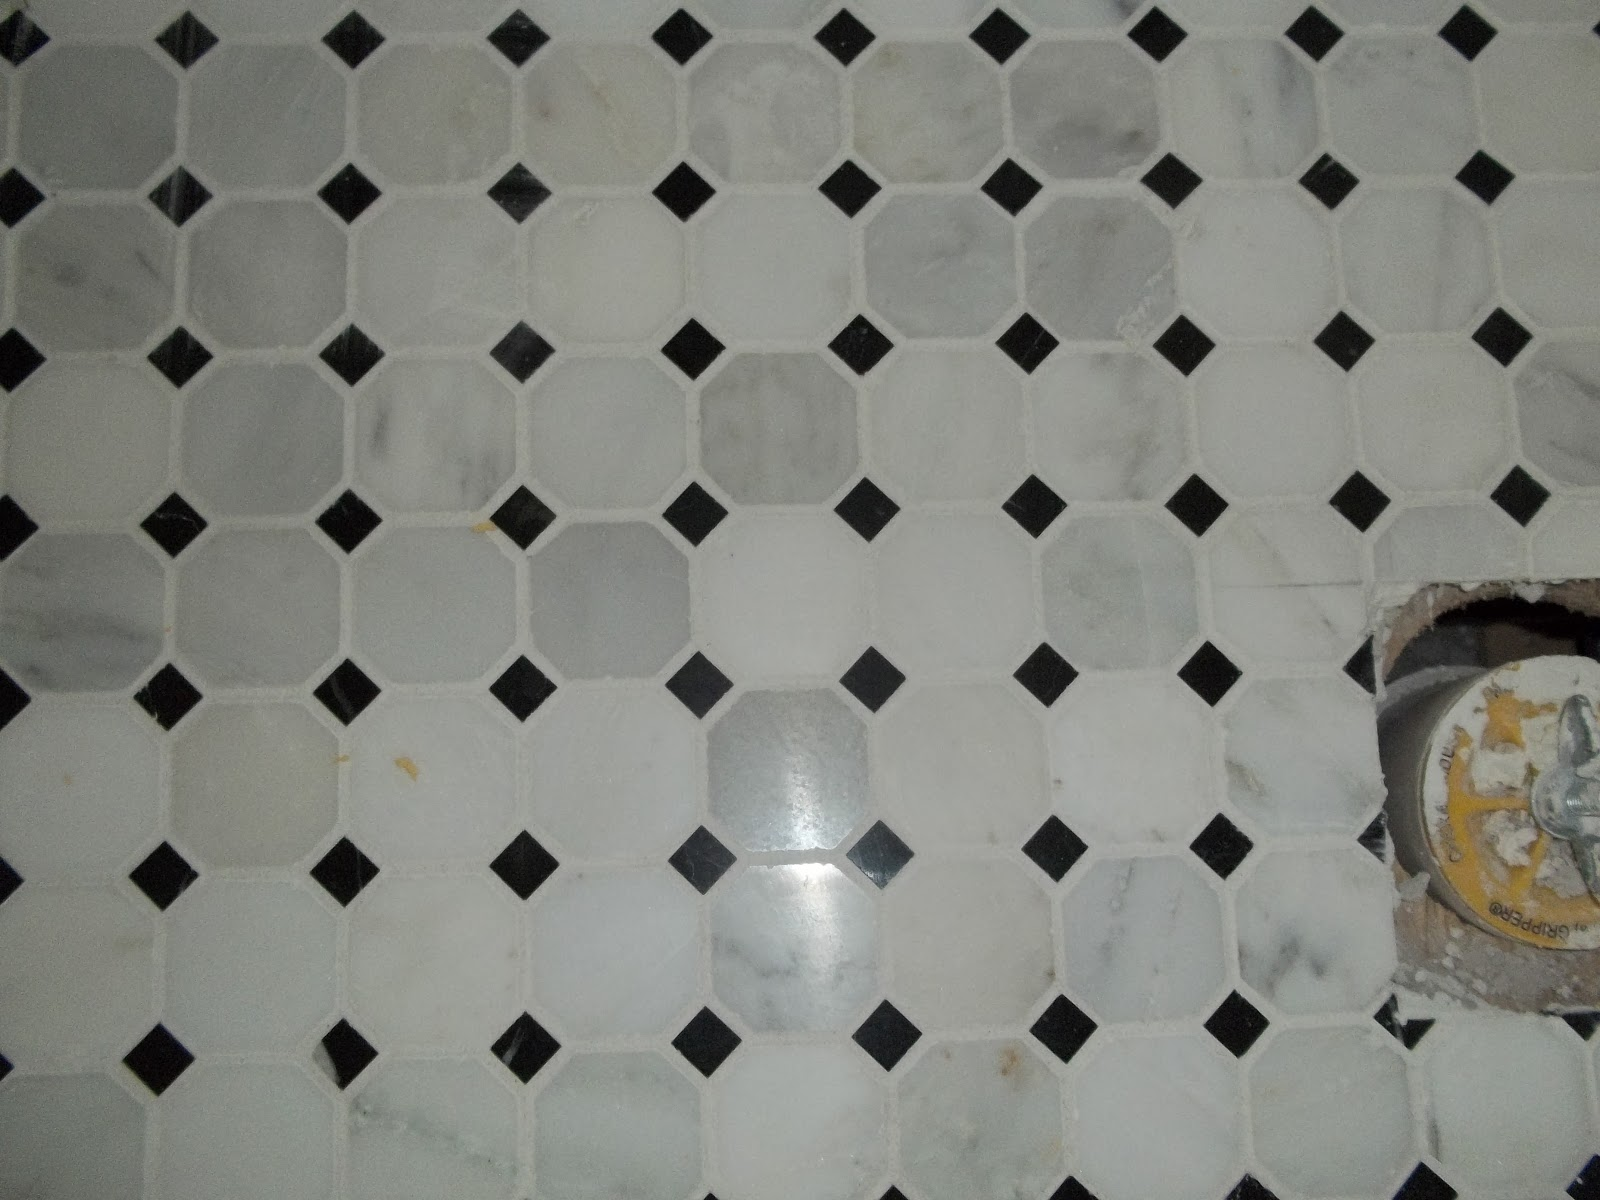 Tile installtion faq sanded grout or un sanded grout ask tile 2 inch hexagon marble tile with a dot easily scratched by sanded grout using a rubber float hand grouted with sanded grout for strength dailygadgetfo Choice Image